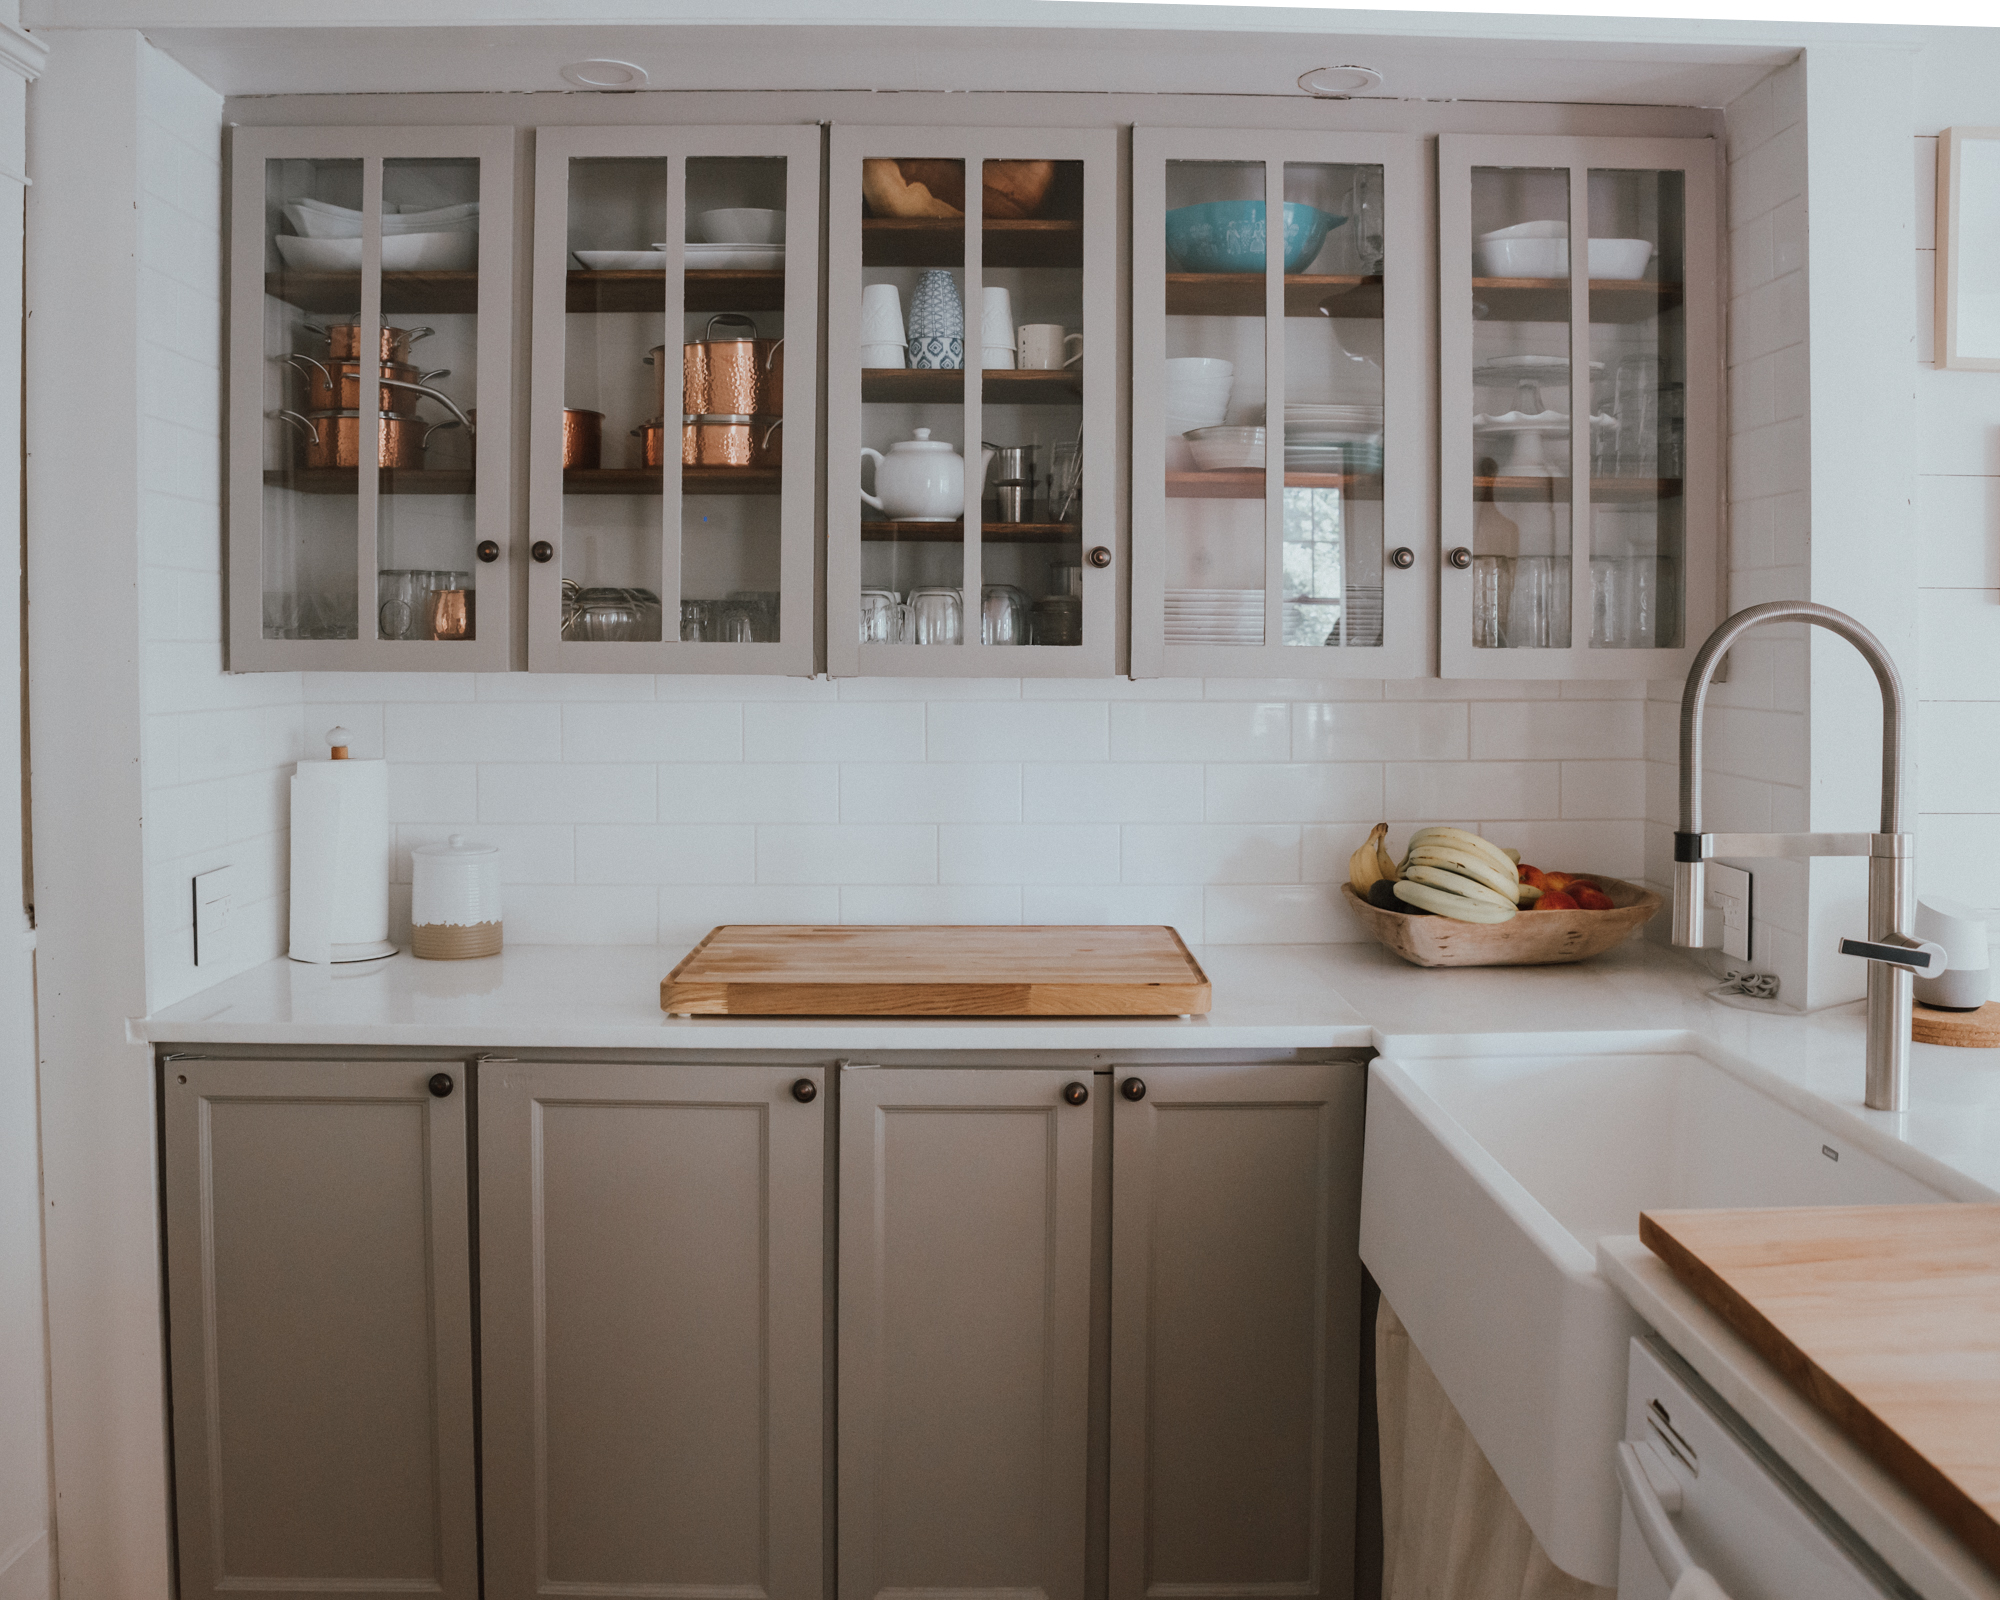 The Wild Decoelis| Our Kitchen Reno : Before and after | grey kitchen